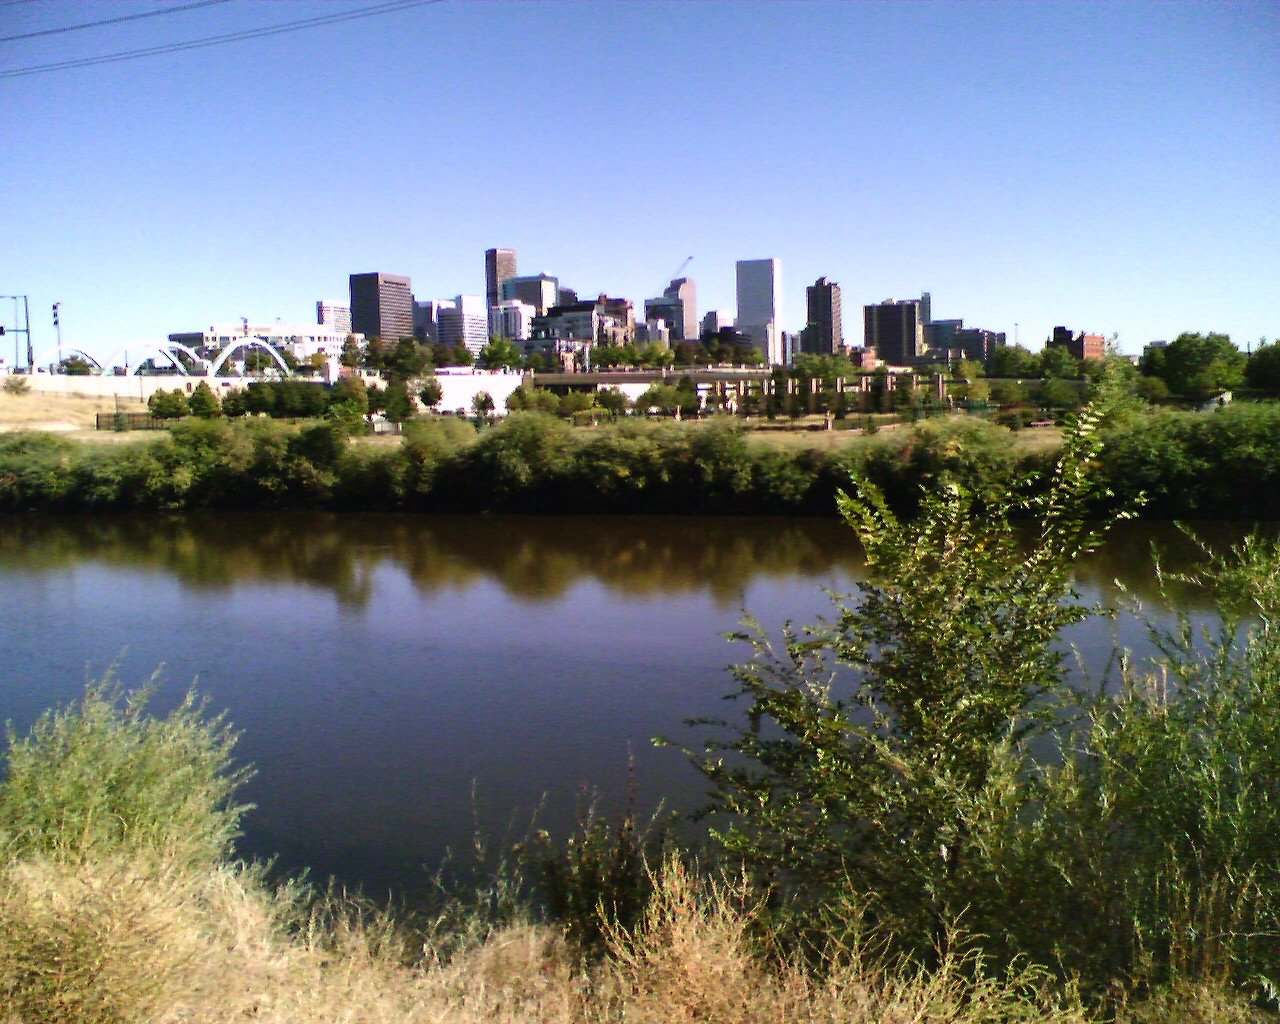 South platte River and city